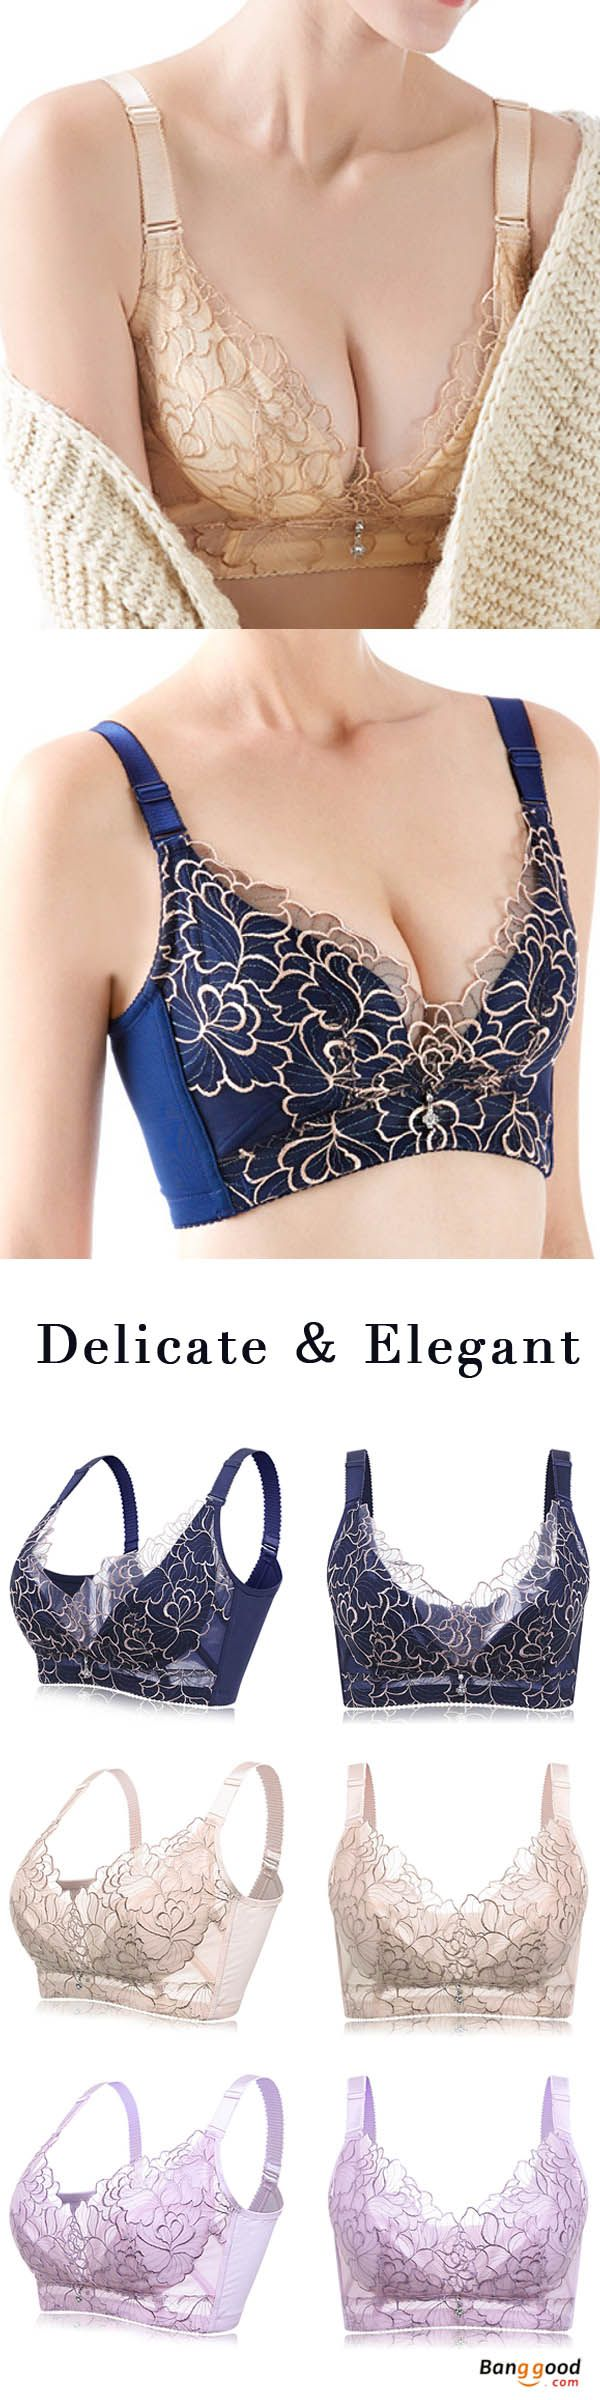 plus size b-f cup sexy lace wireless push up thin breathable bra